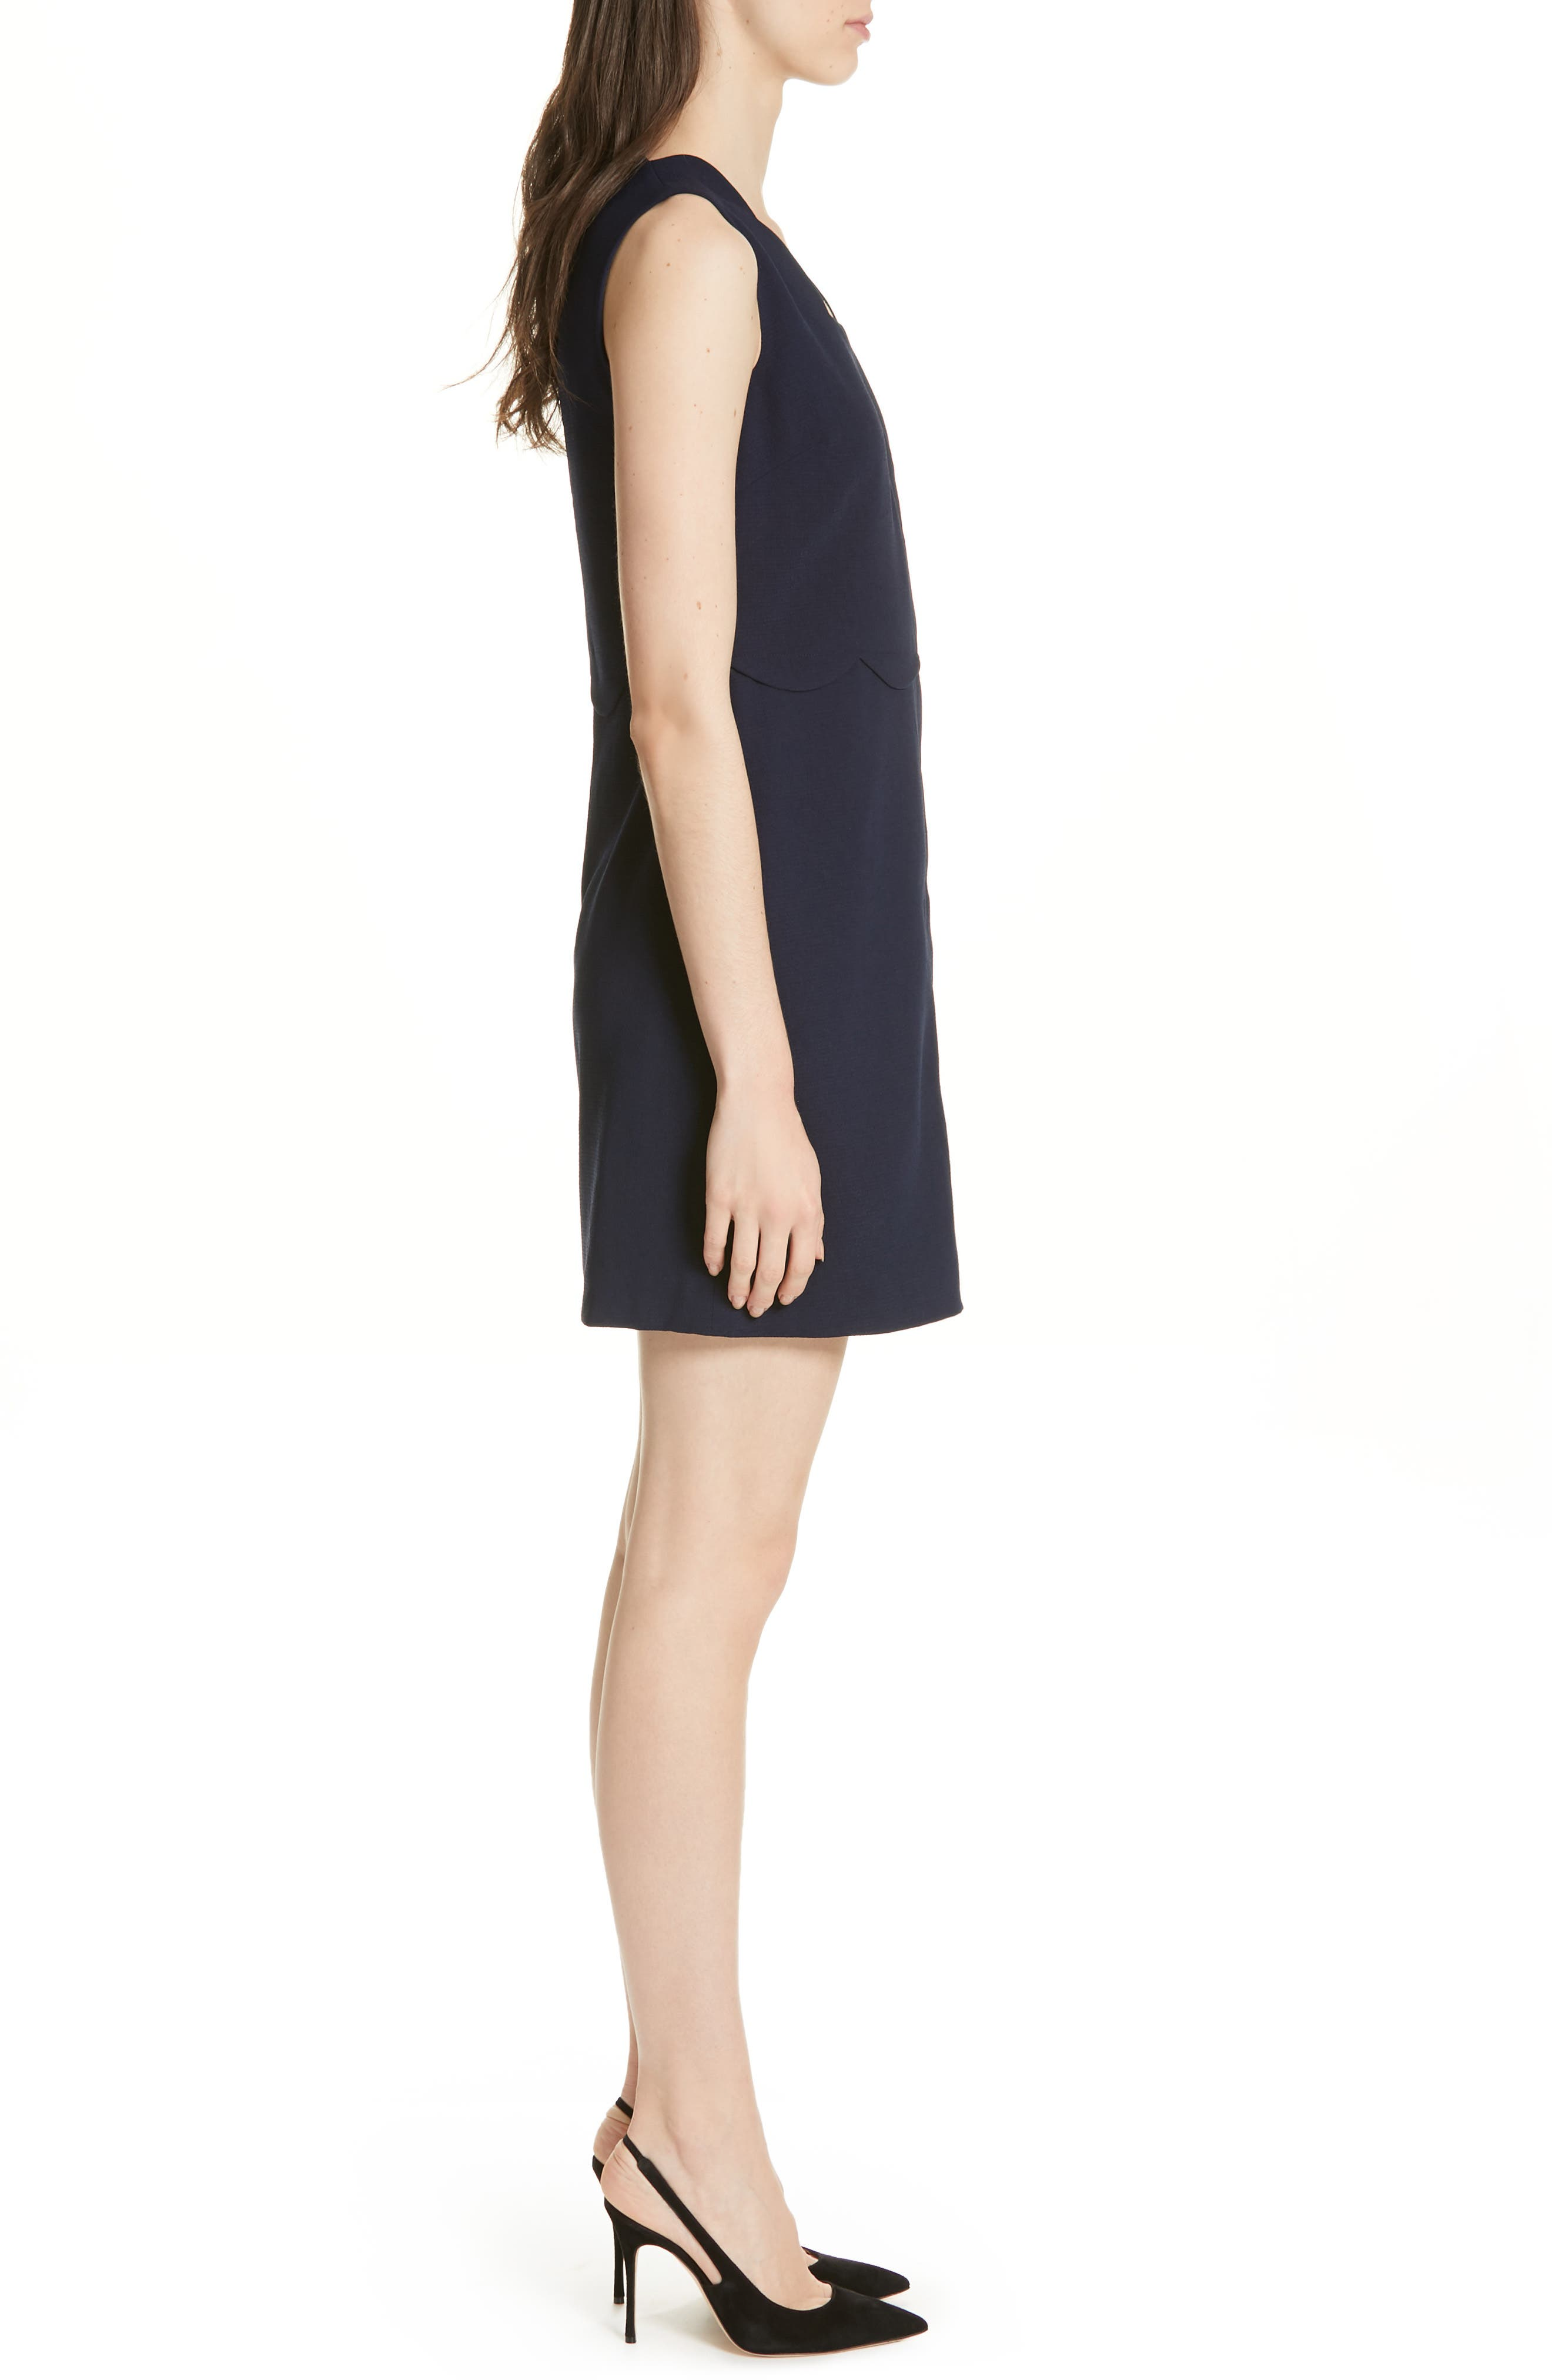 Rubeyed Scallop Edge A-Line Dress,                             Alternate thumbnail 3, color,                             DARK BLUE